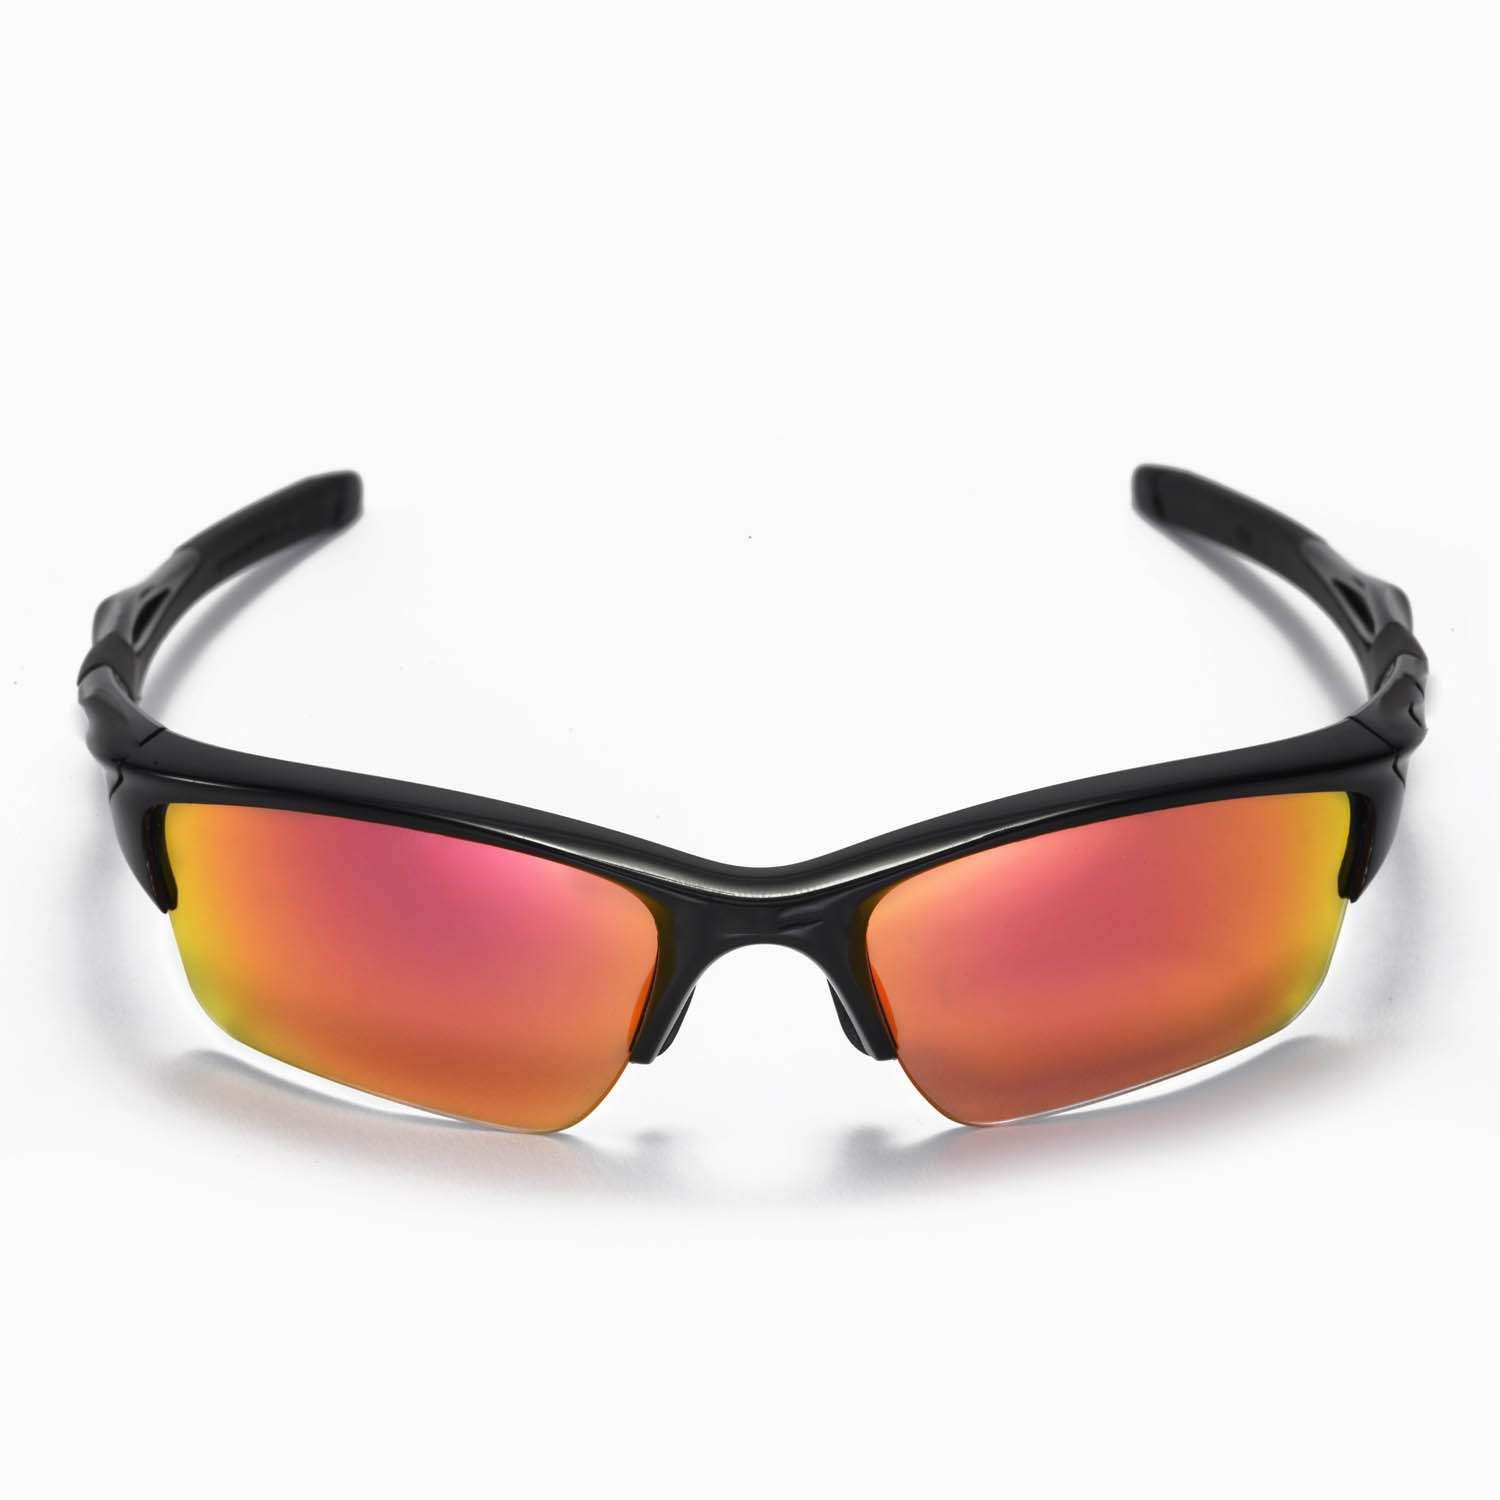 oakley half jacket 2.0 lenses polarized vtma  New Walleva Polarized Fire Red Lenses For Oakley Half Jacket 20 XL